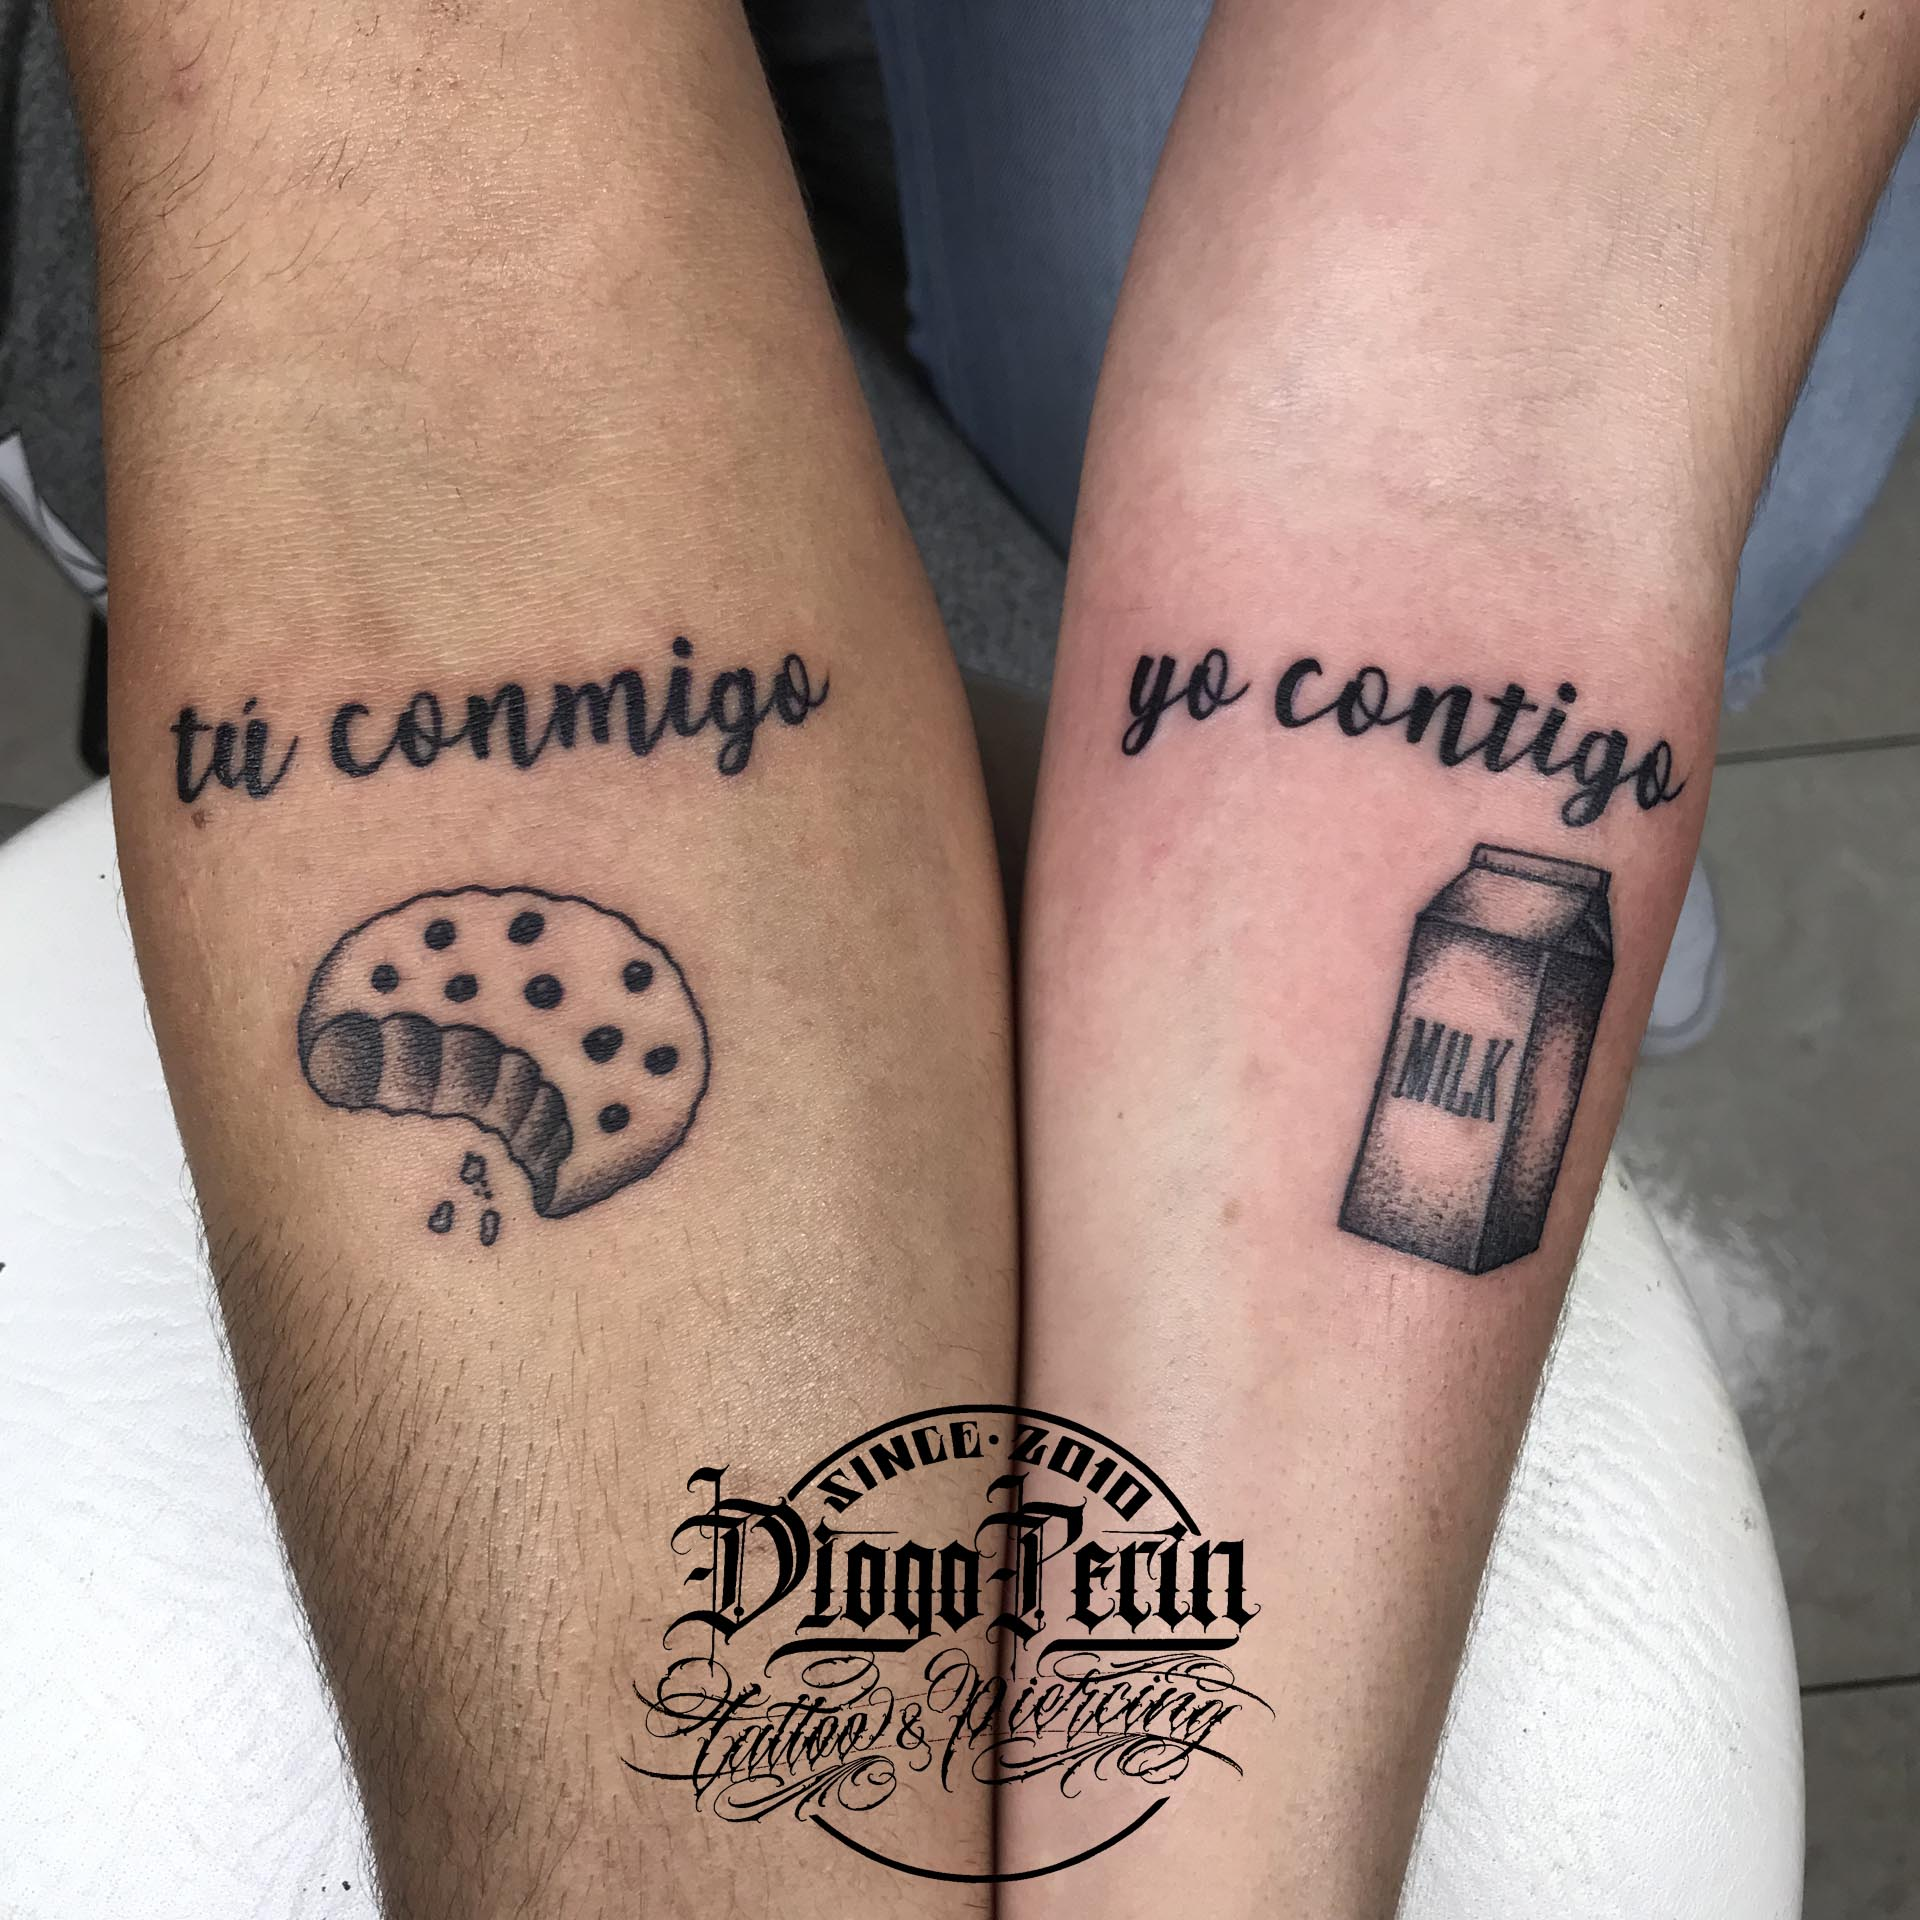 tatuaje mini pareja tattoo parejas tattoo galleta leche byn blanco y negro tattoo alicante tatuaje chiquitattoo